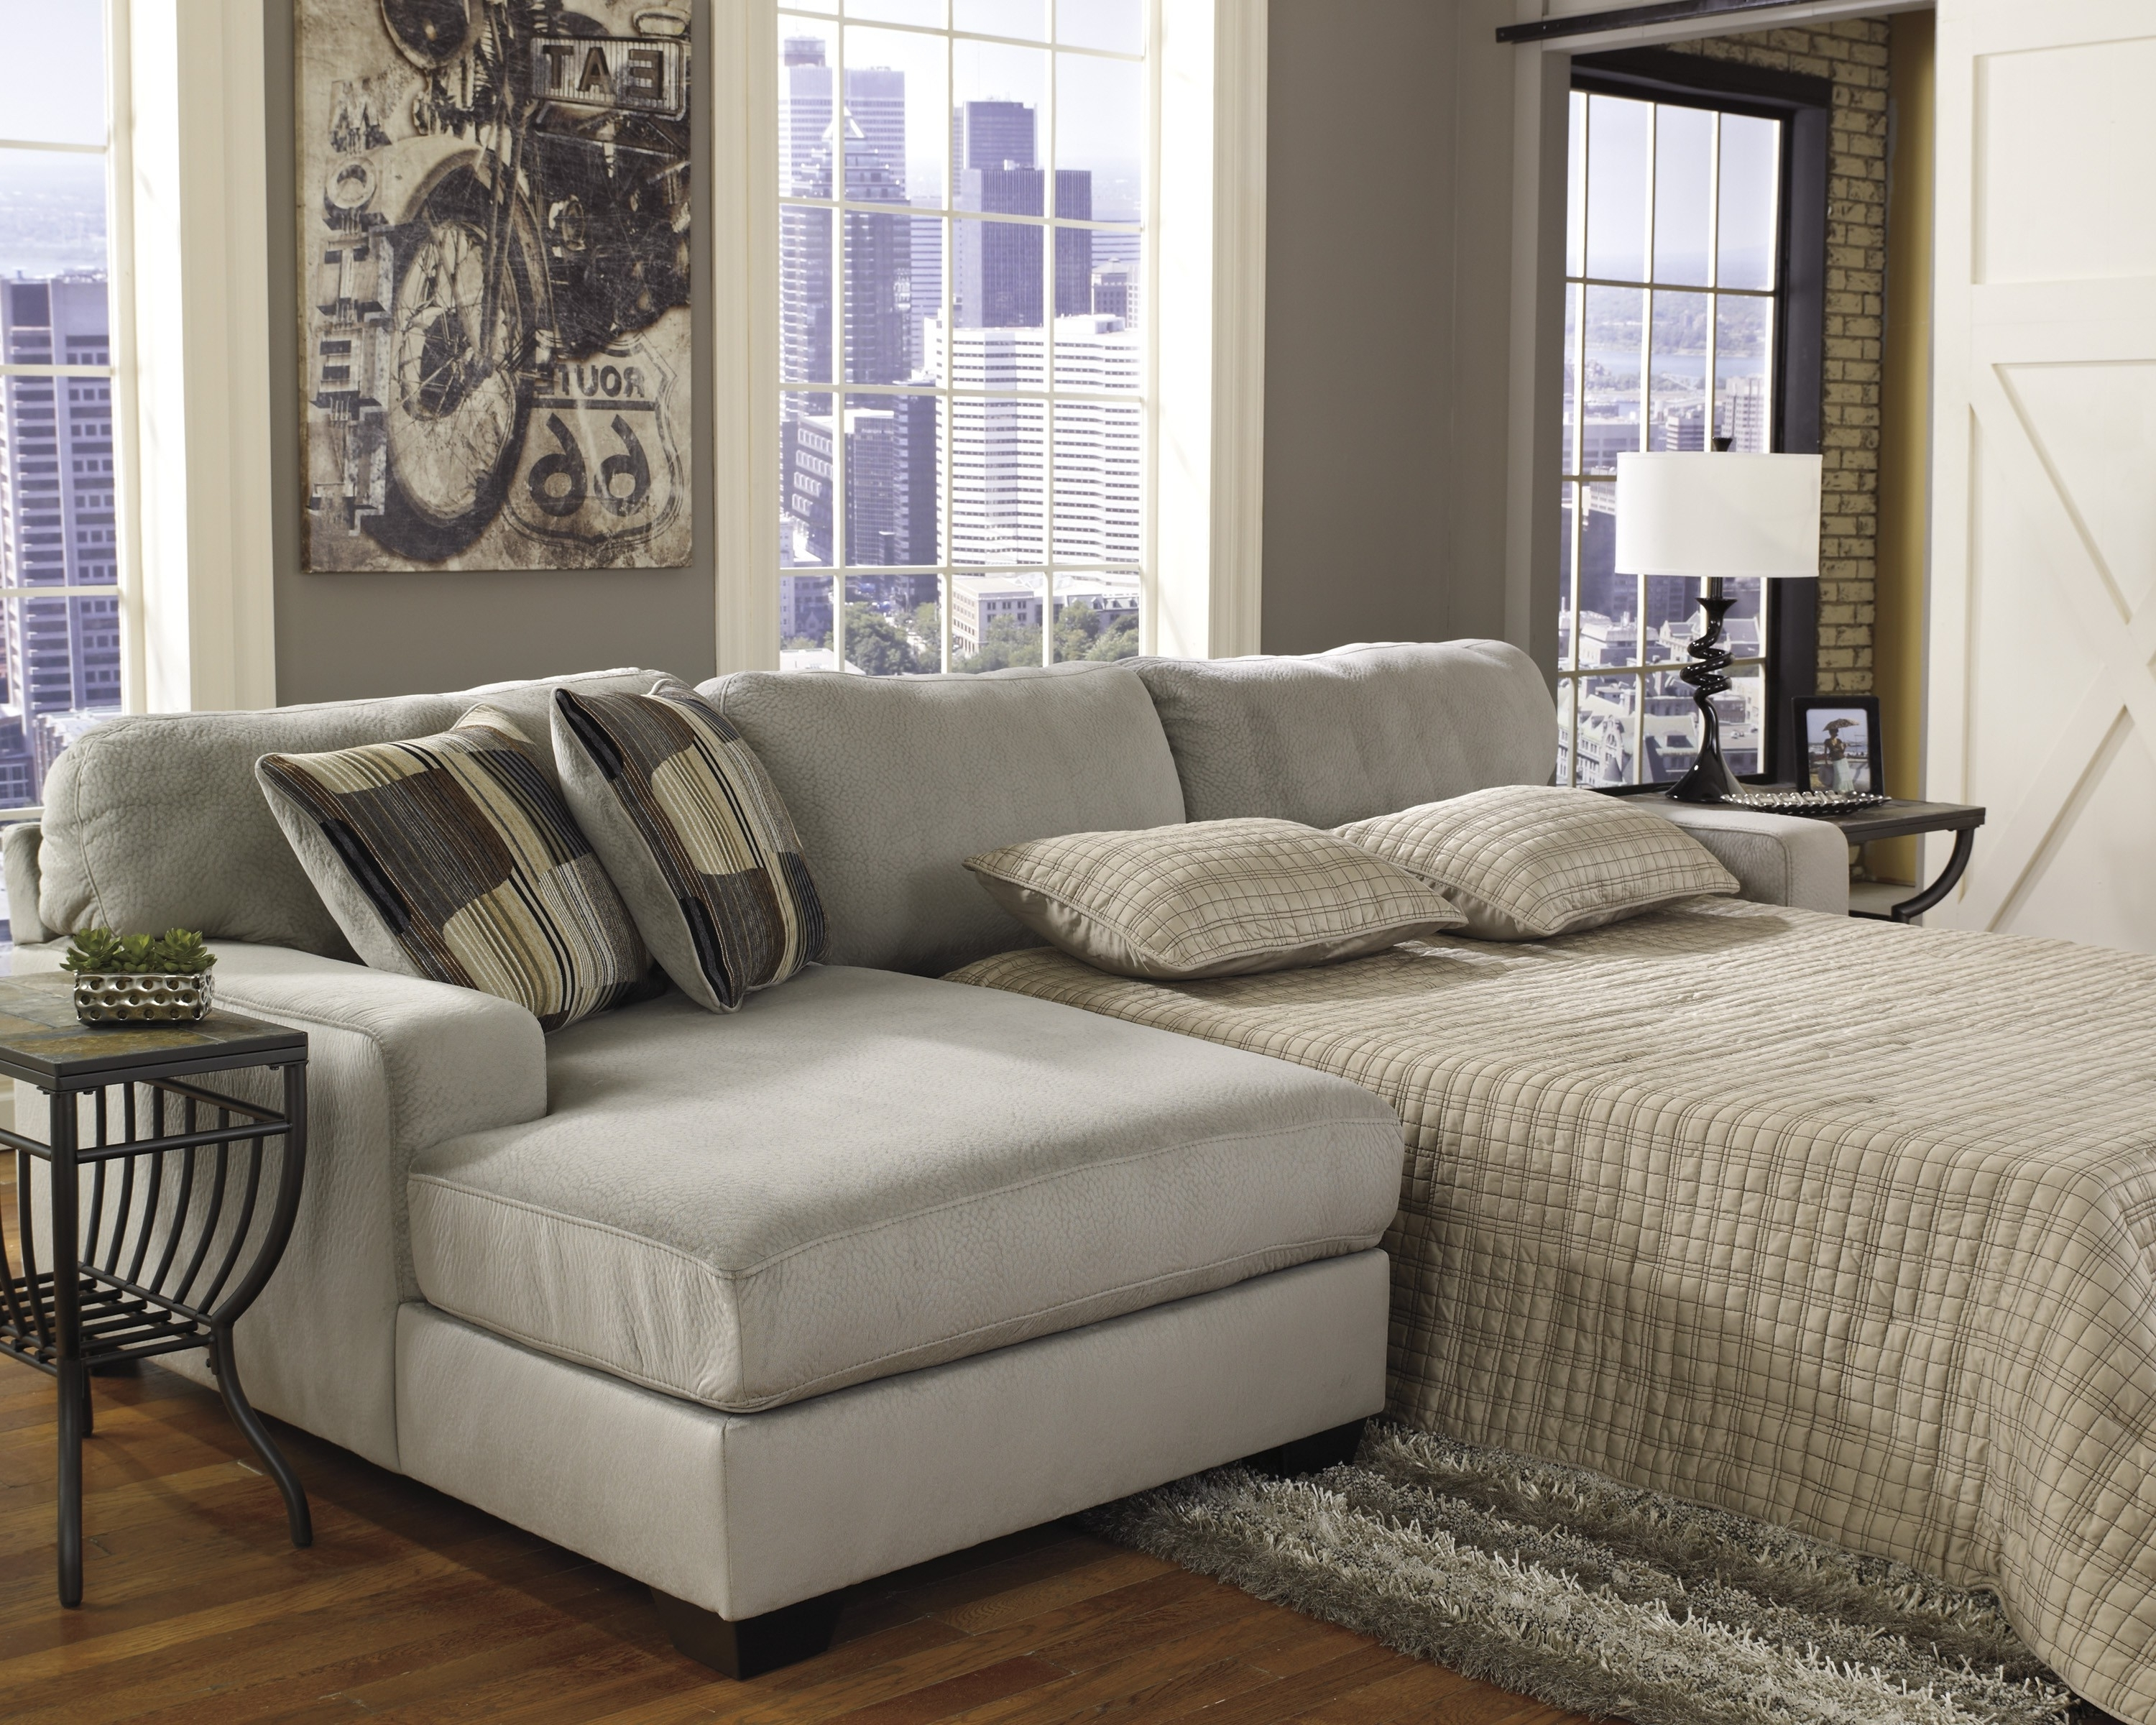 Lovely Queen Sleeper Sectional Sofa 87 In Sofas And Couches Set Throughout Favorite Sectional Sofas With Queen Size Sleeper (View 2 of 15)